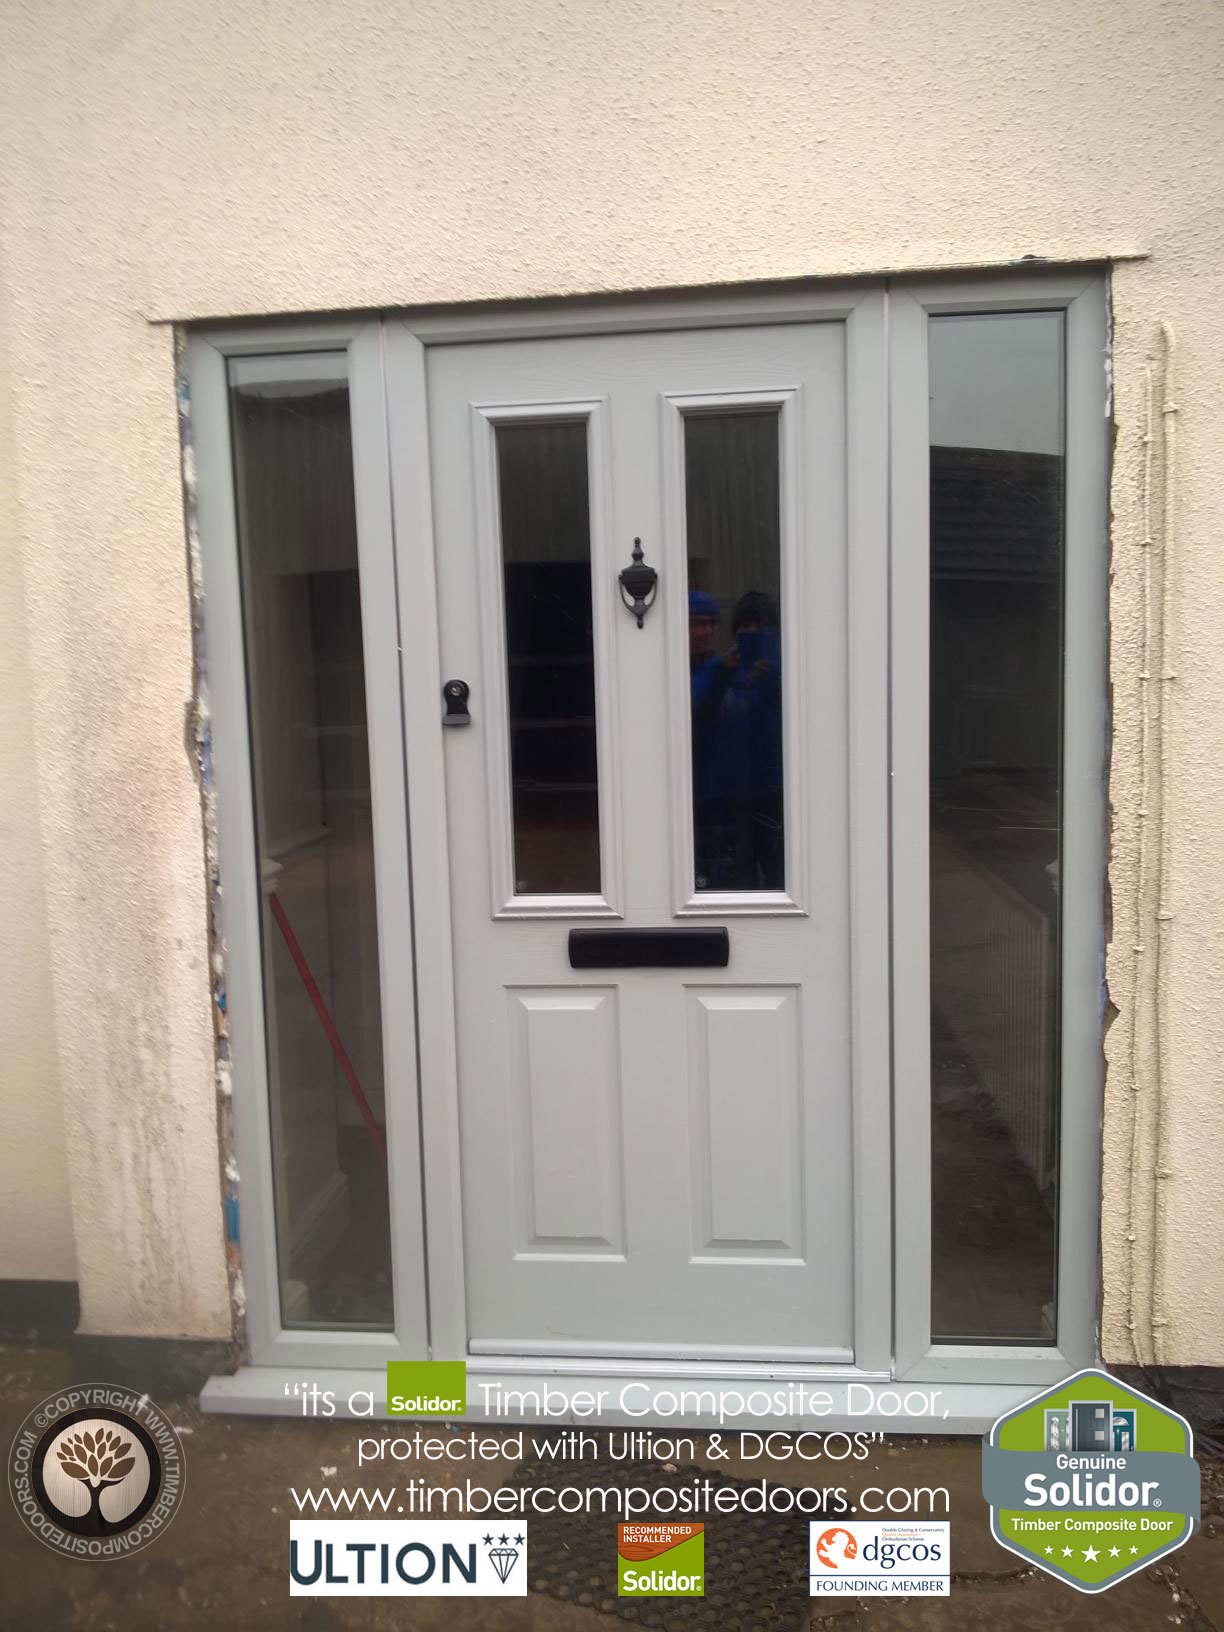 Solidor Composite Door By Timber Composite Doors